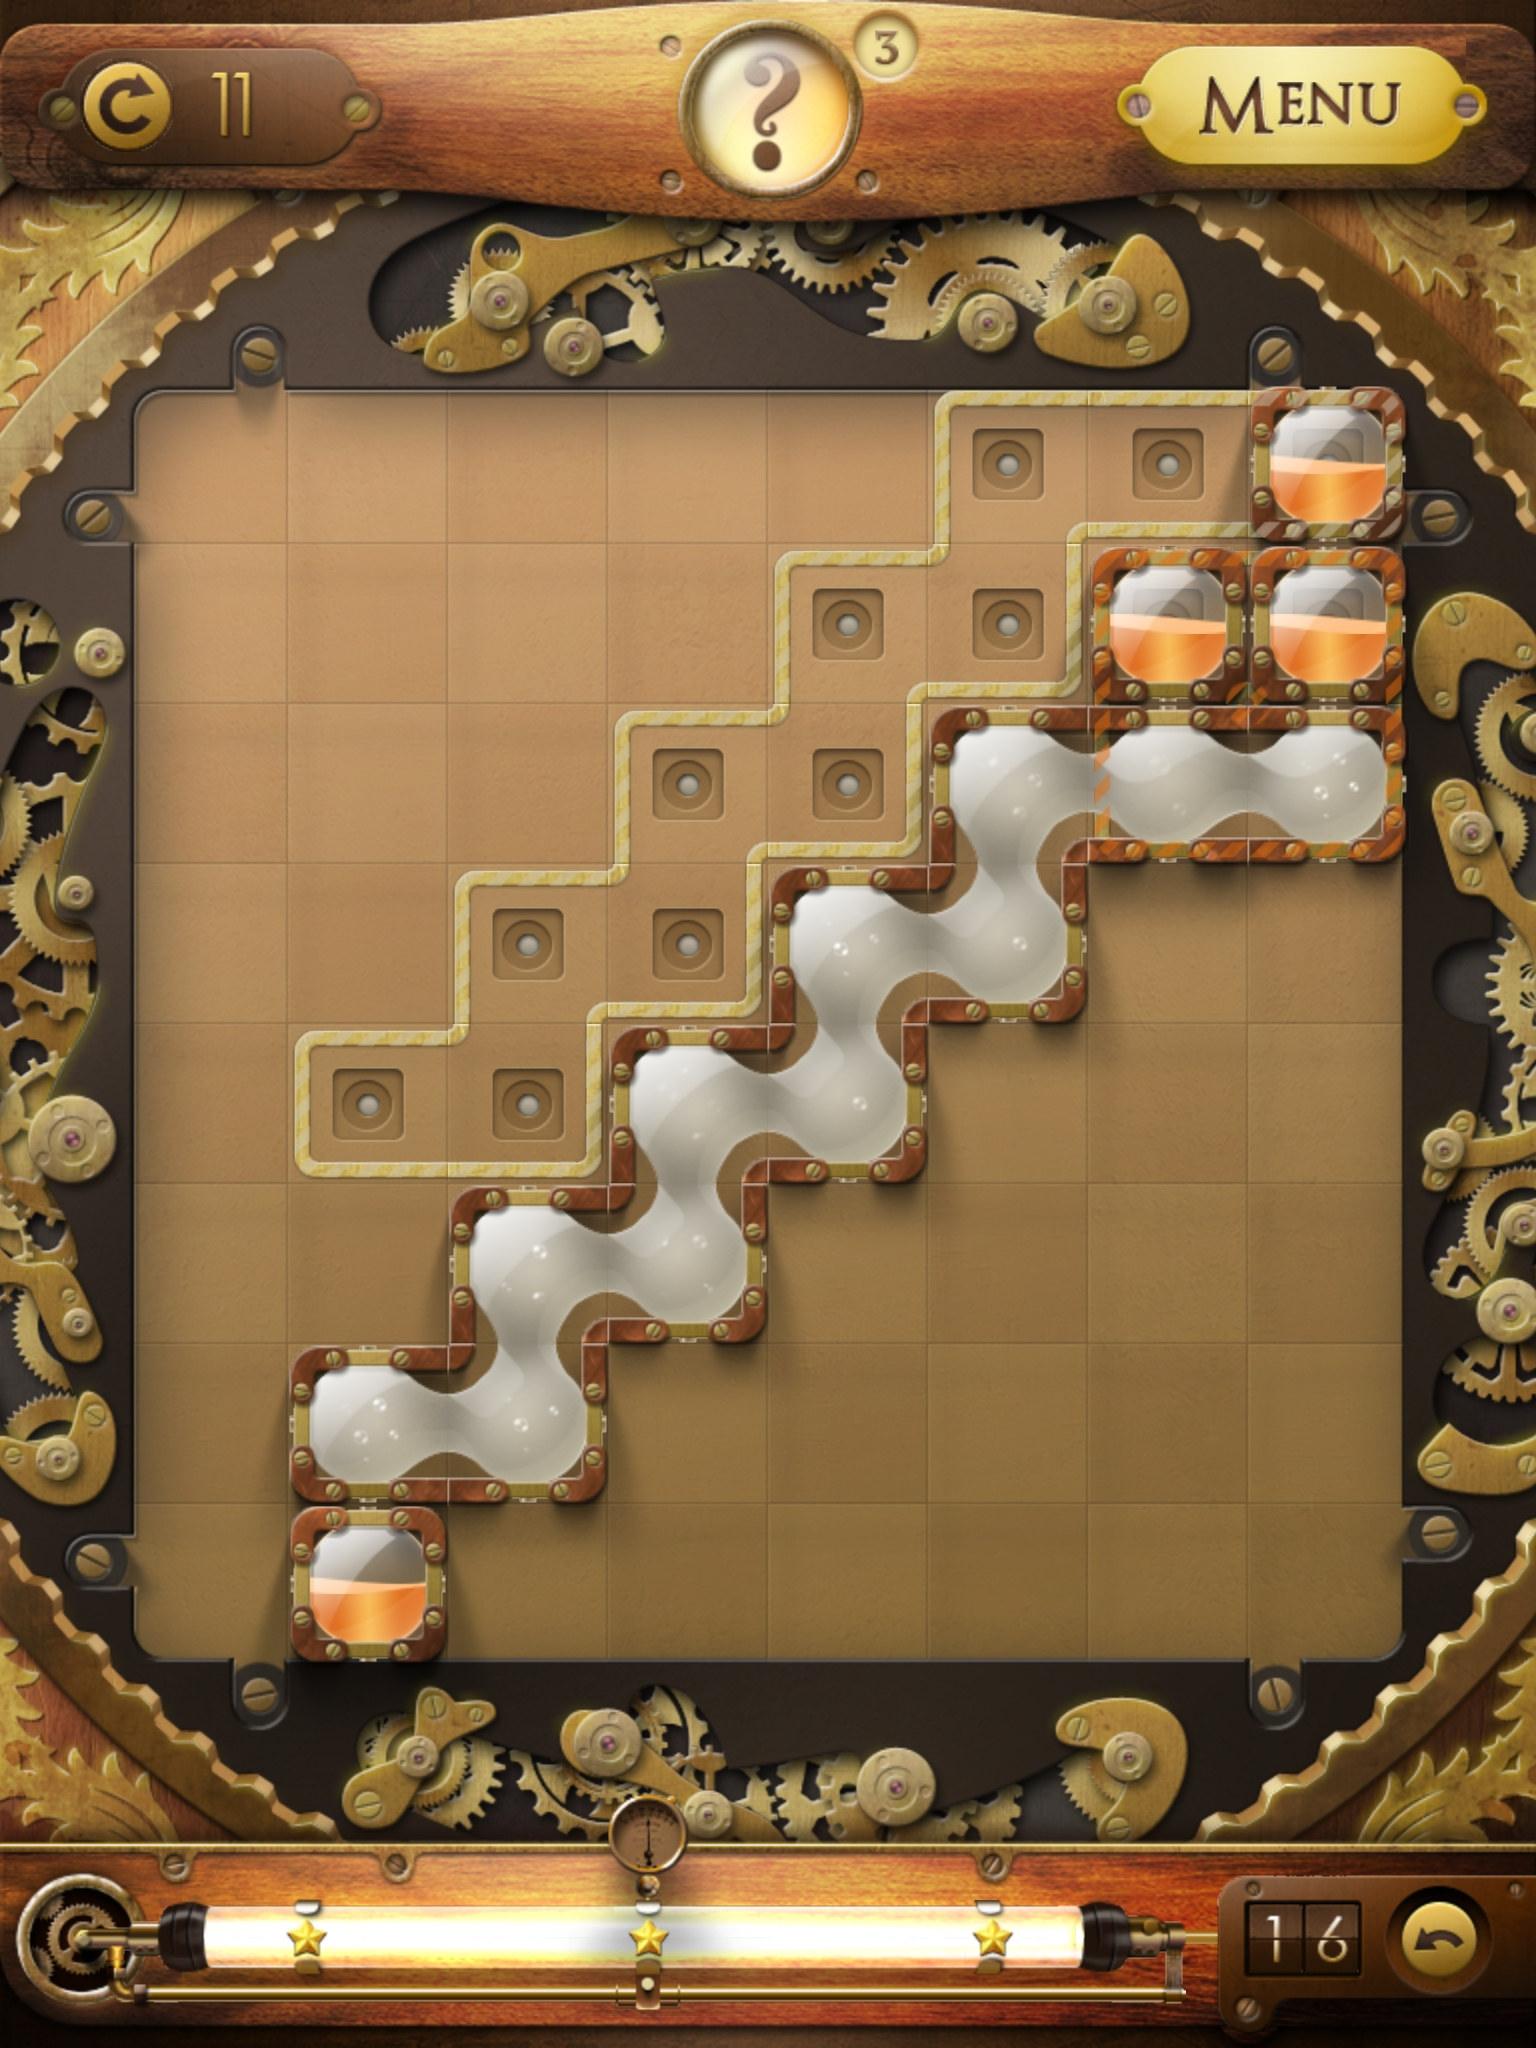 Steam Panic review - A hard-as-nails steampunk puzzler that will test your brain and patience